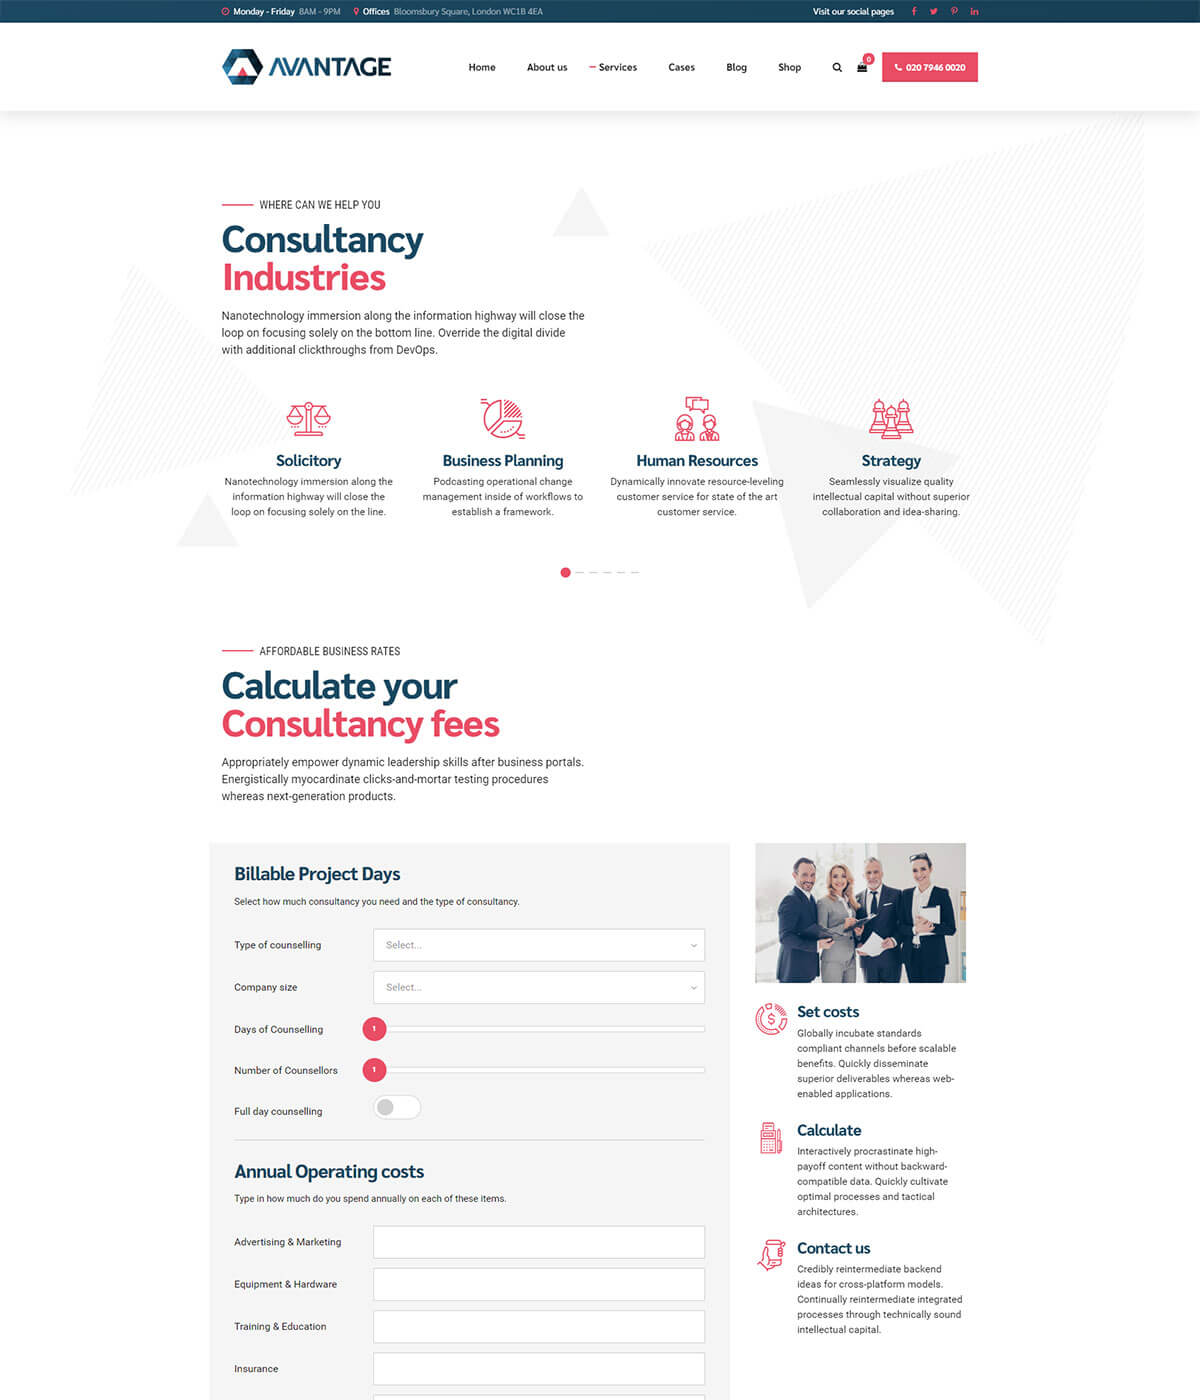 http://avantage.bold-themes.com/wp-content/uploads/2019/05/business-10-cc.jpg